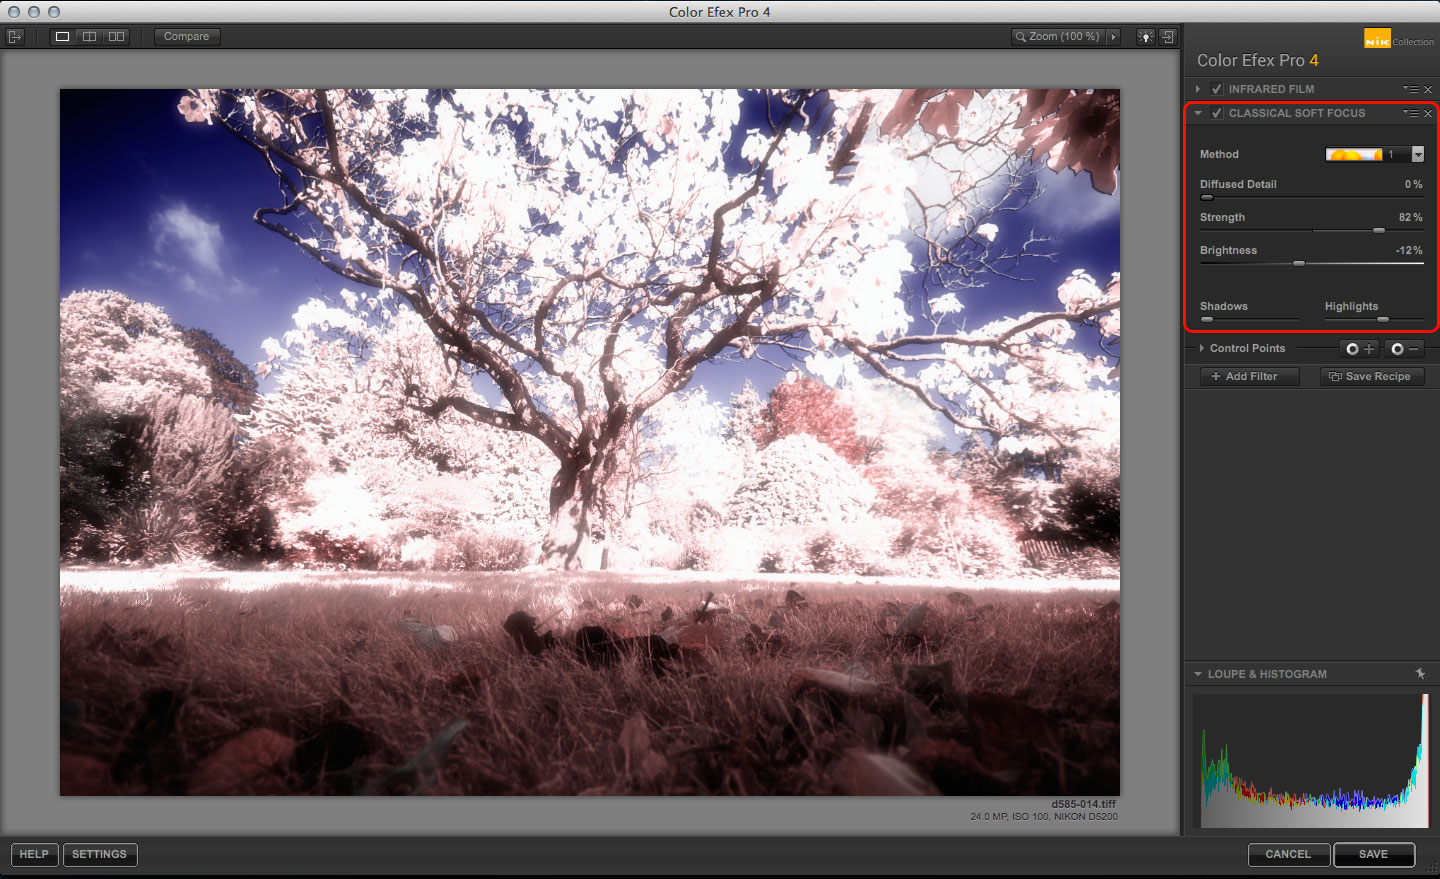 Color Efex Pro Infrared Film effect